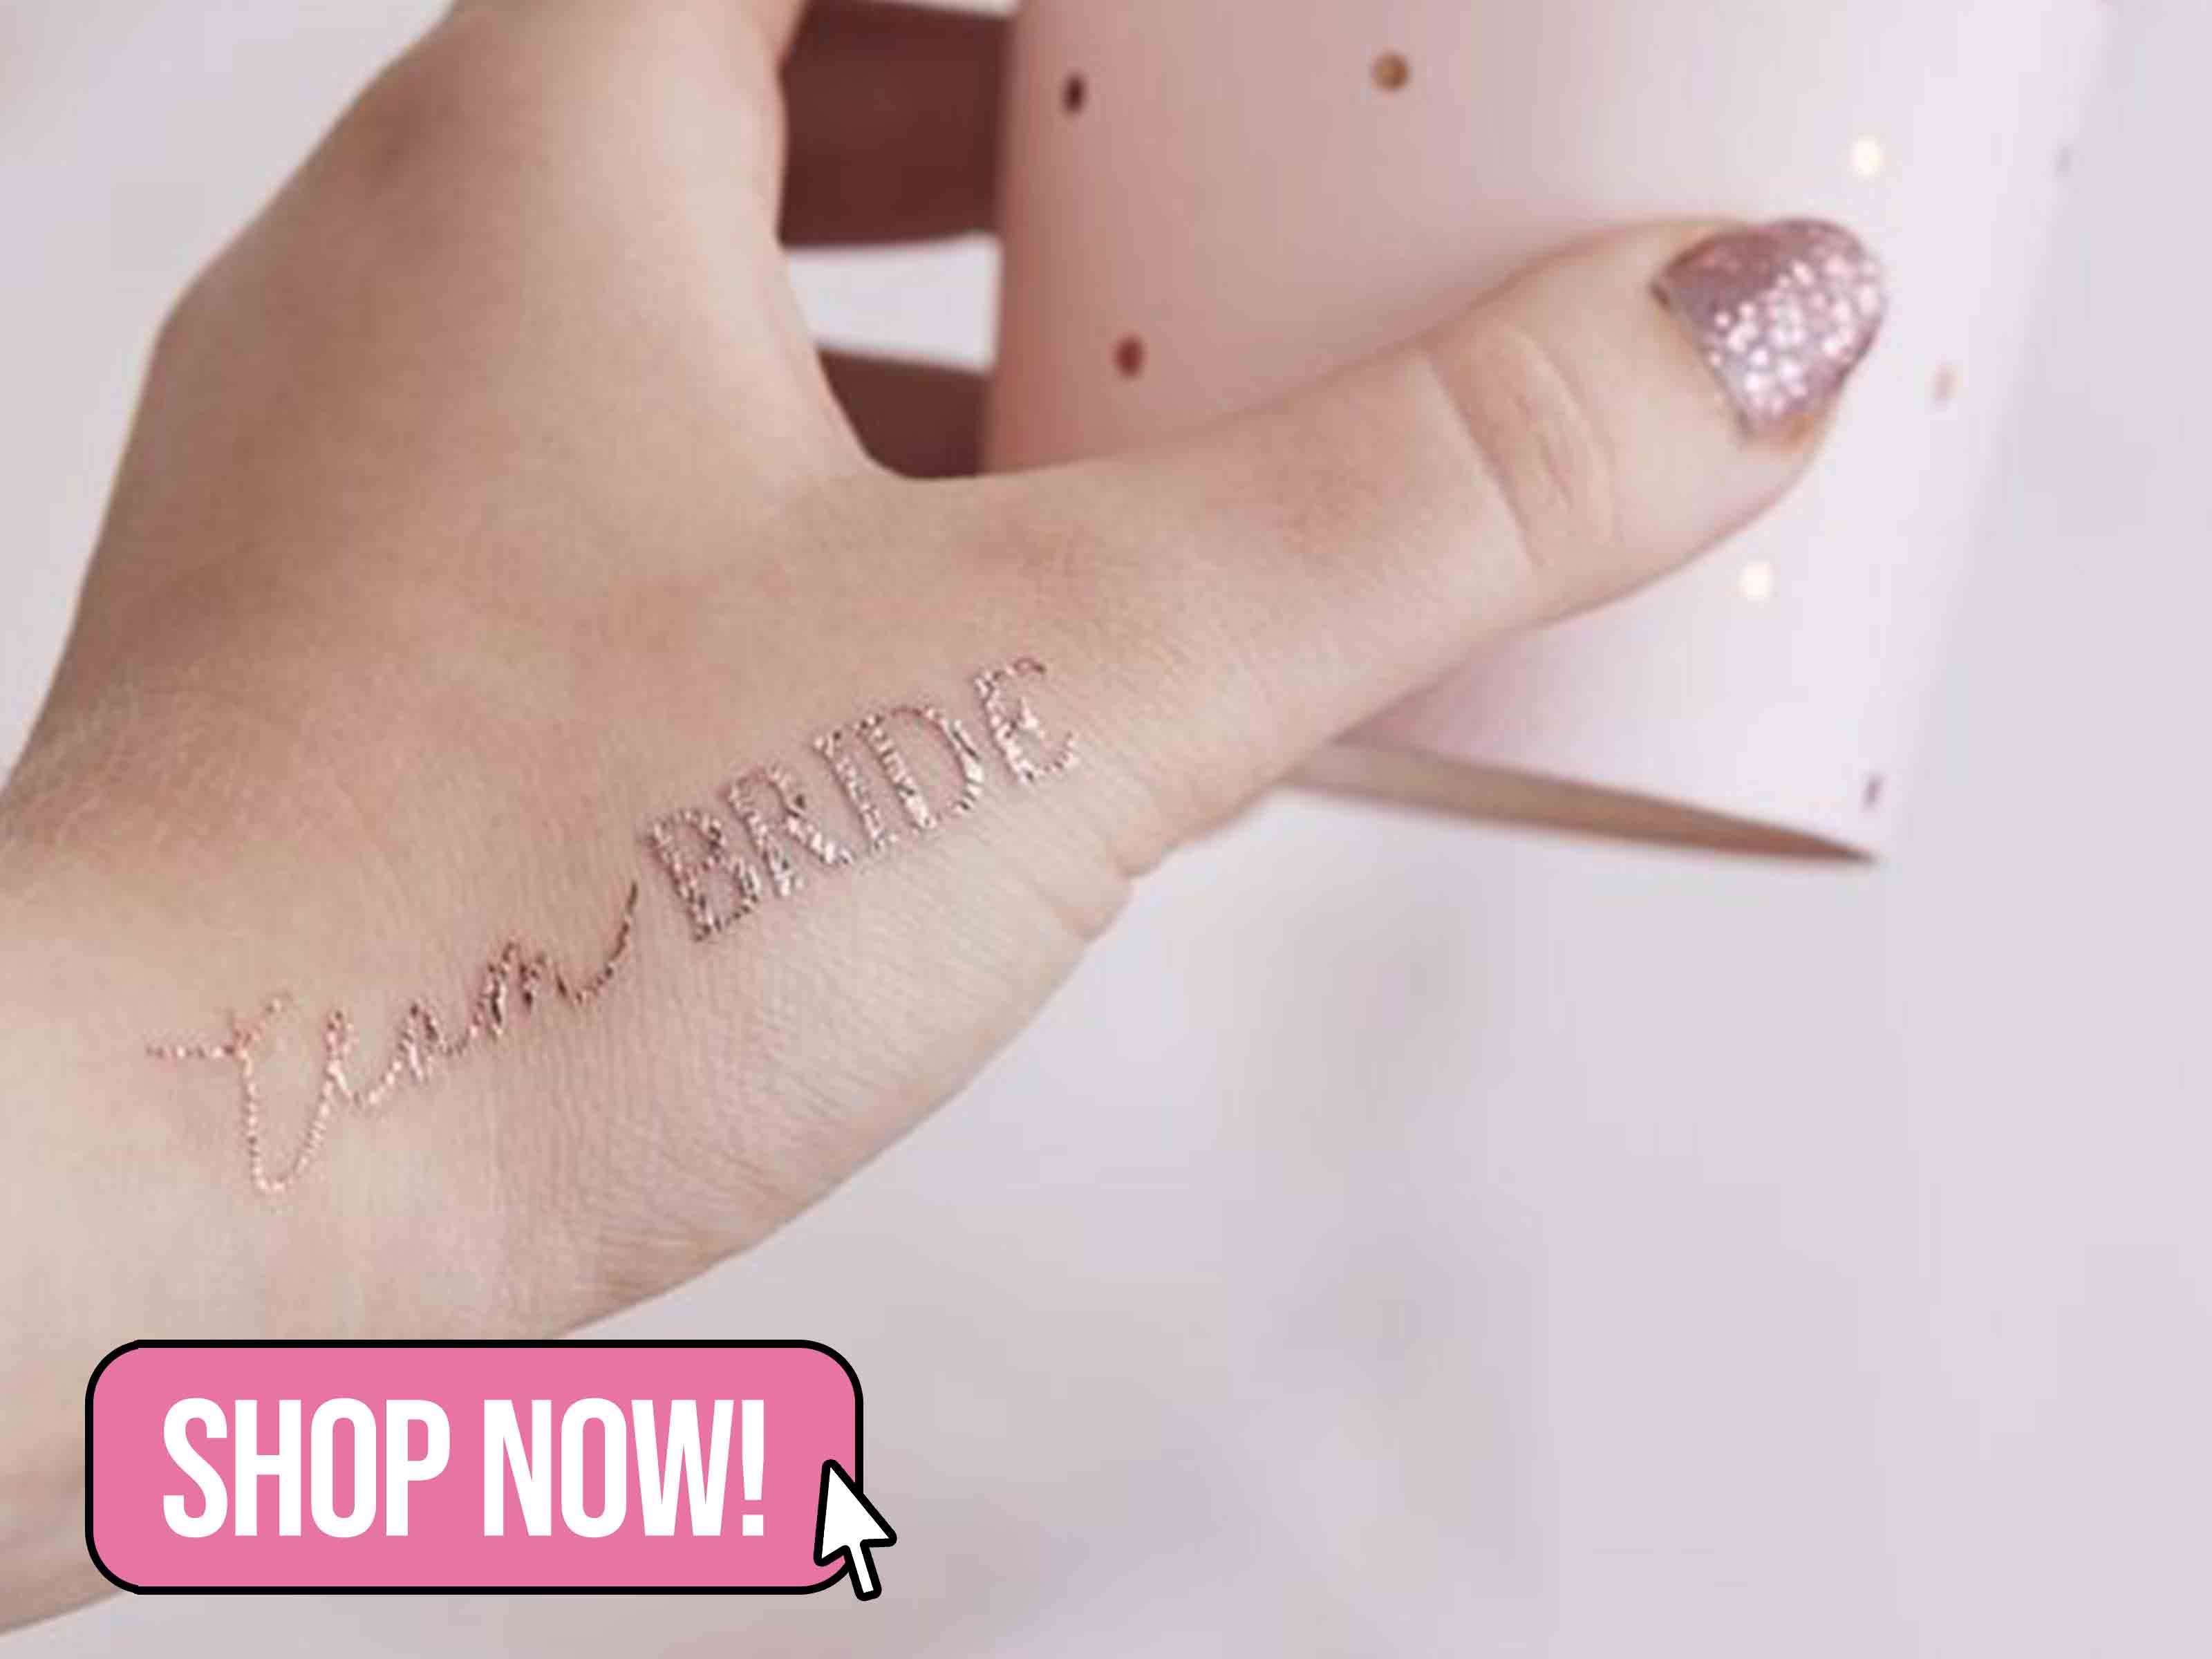 ROSE GOLD TEAM BRIDE HEN PARTY TATTOOS - PartyTouchesUK